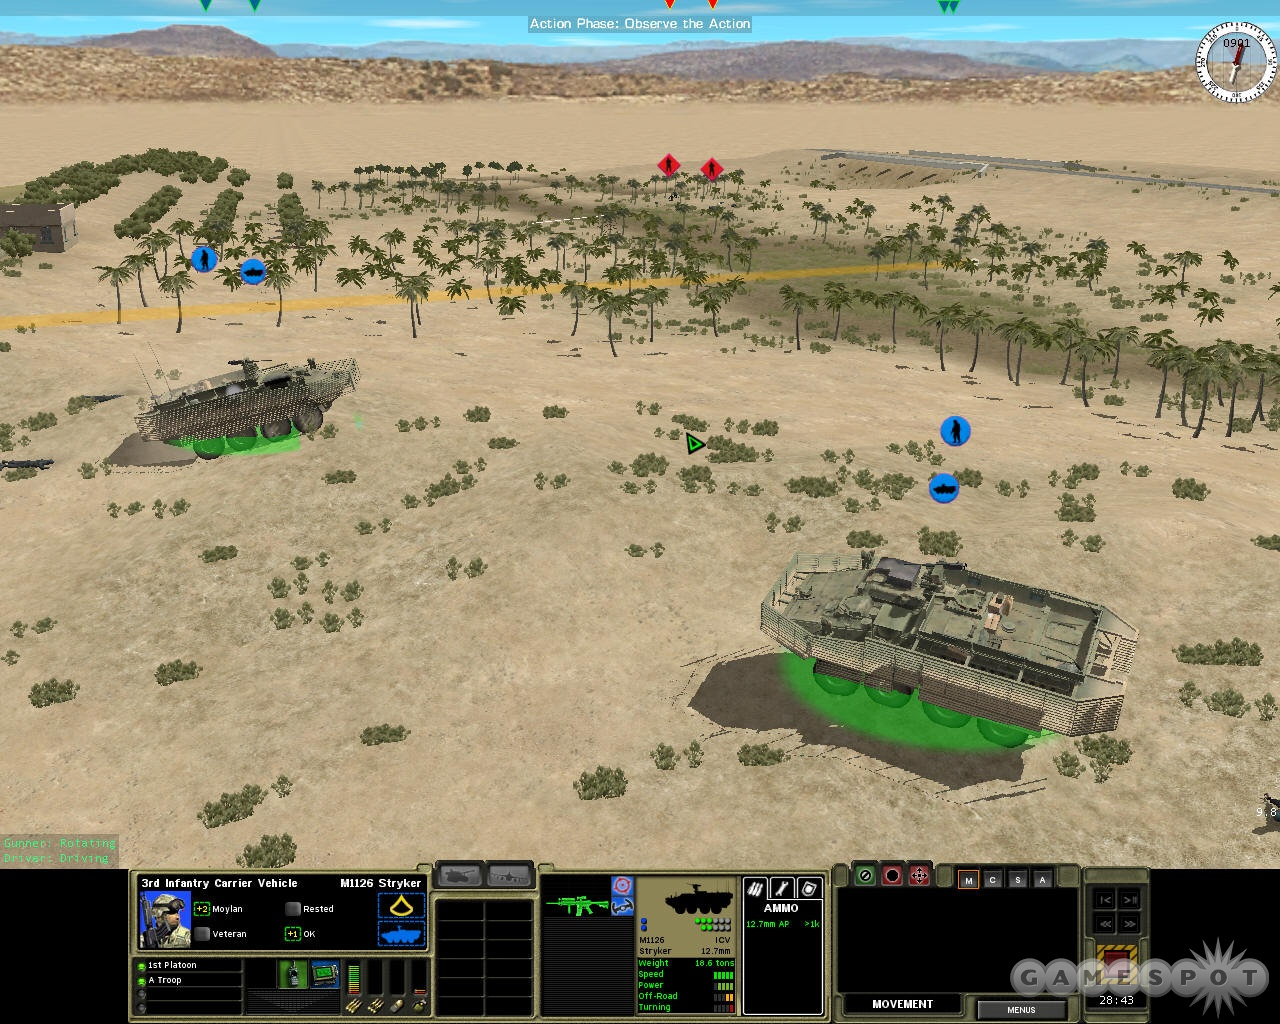 Combat Mission: Shock Force lets you test out the abilities of the US Army's new Styrker combat vehicles.